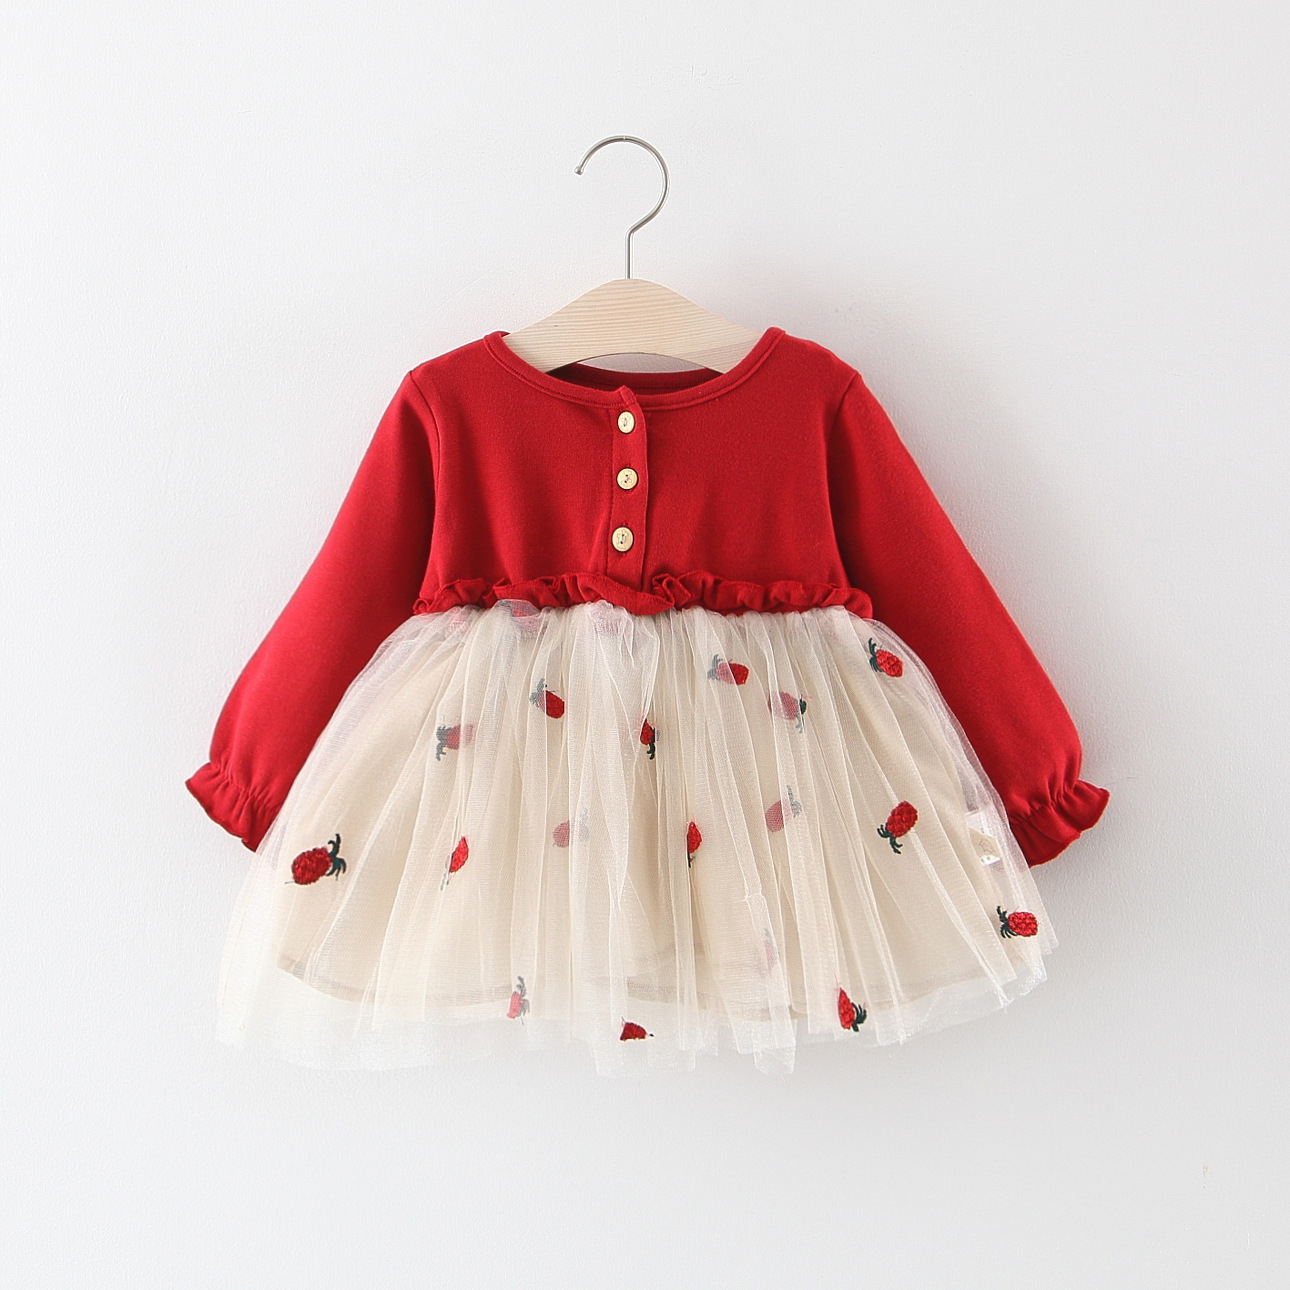 Fashion Baby Dress Long Sleeve Infant Dress Pineapple Embroideried Spring 2019 Baby Girls Clothing